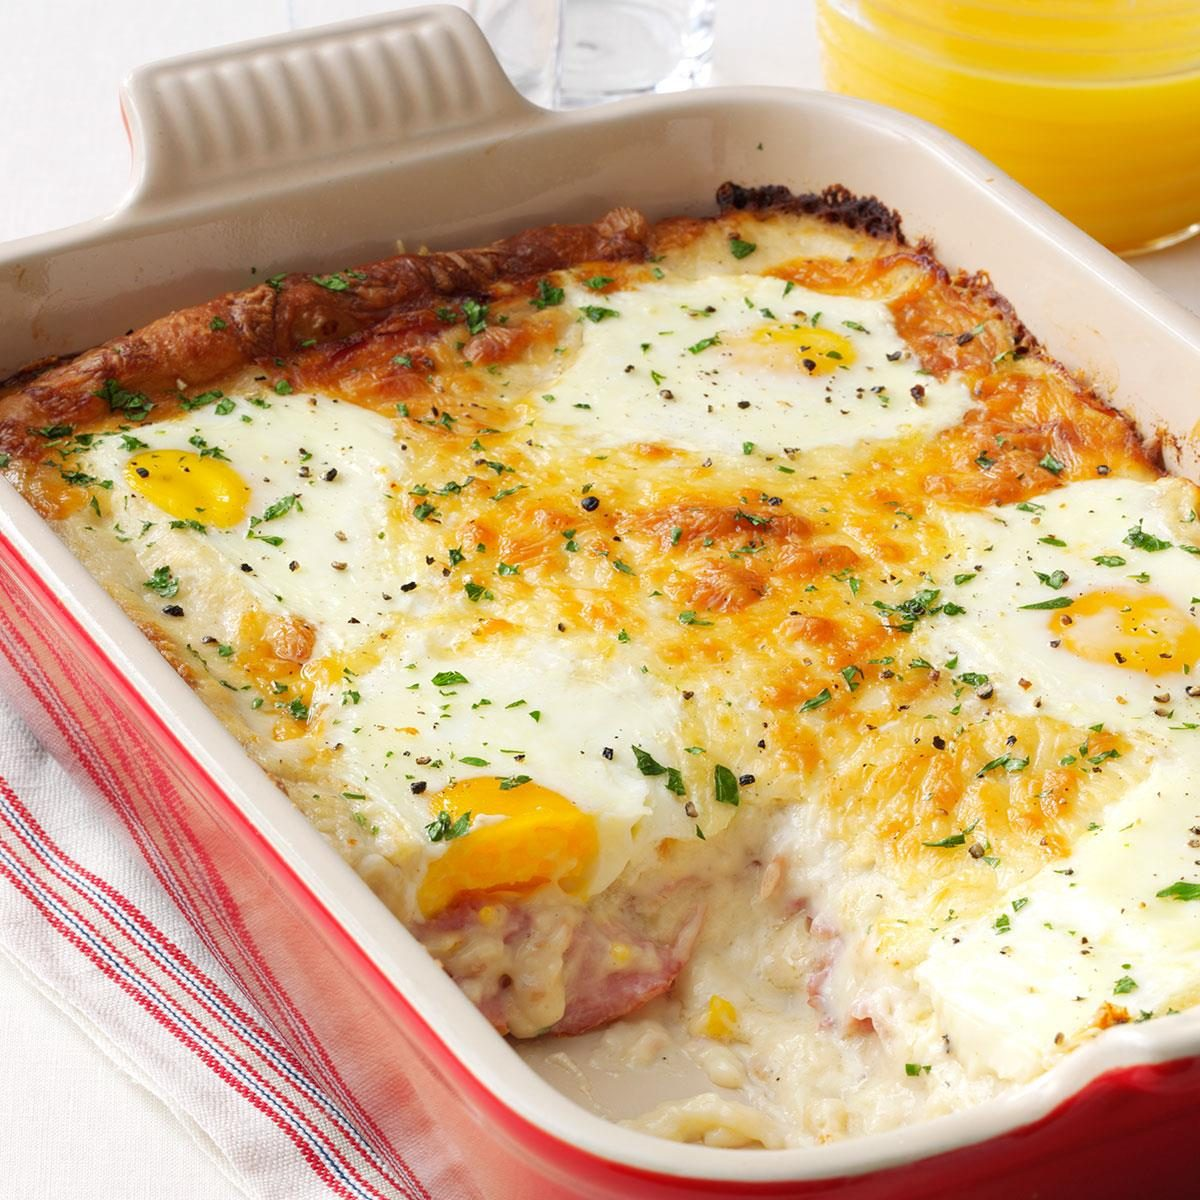 Recipes For Egg Bake Dishes: Ham, Egg & Cheese Casserole Recipe